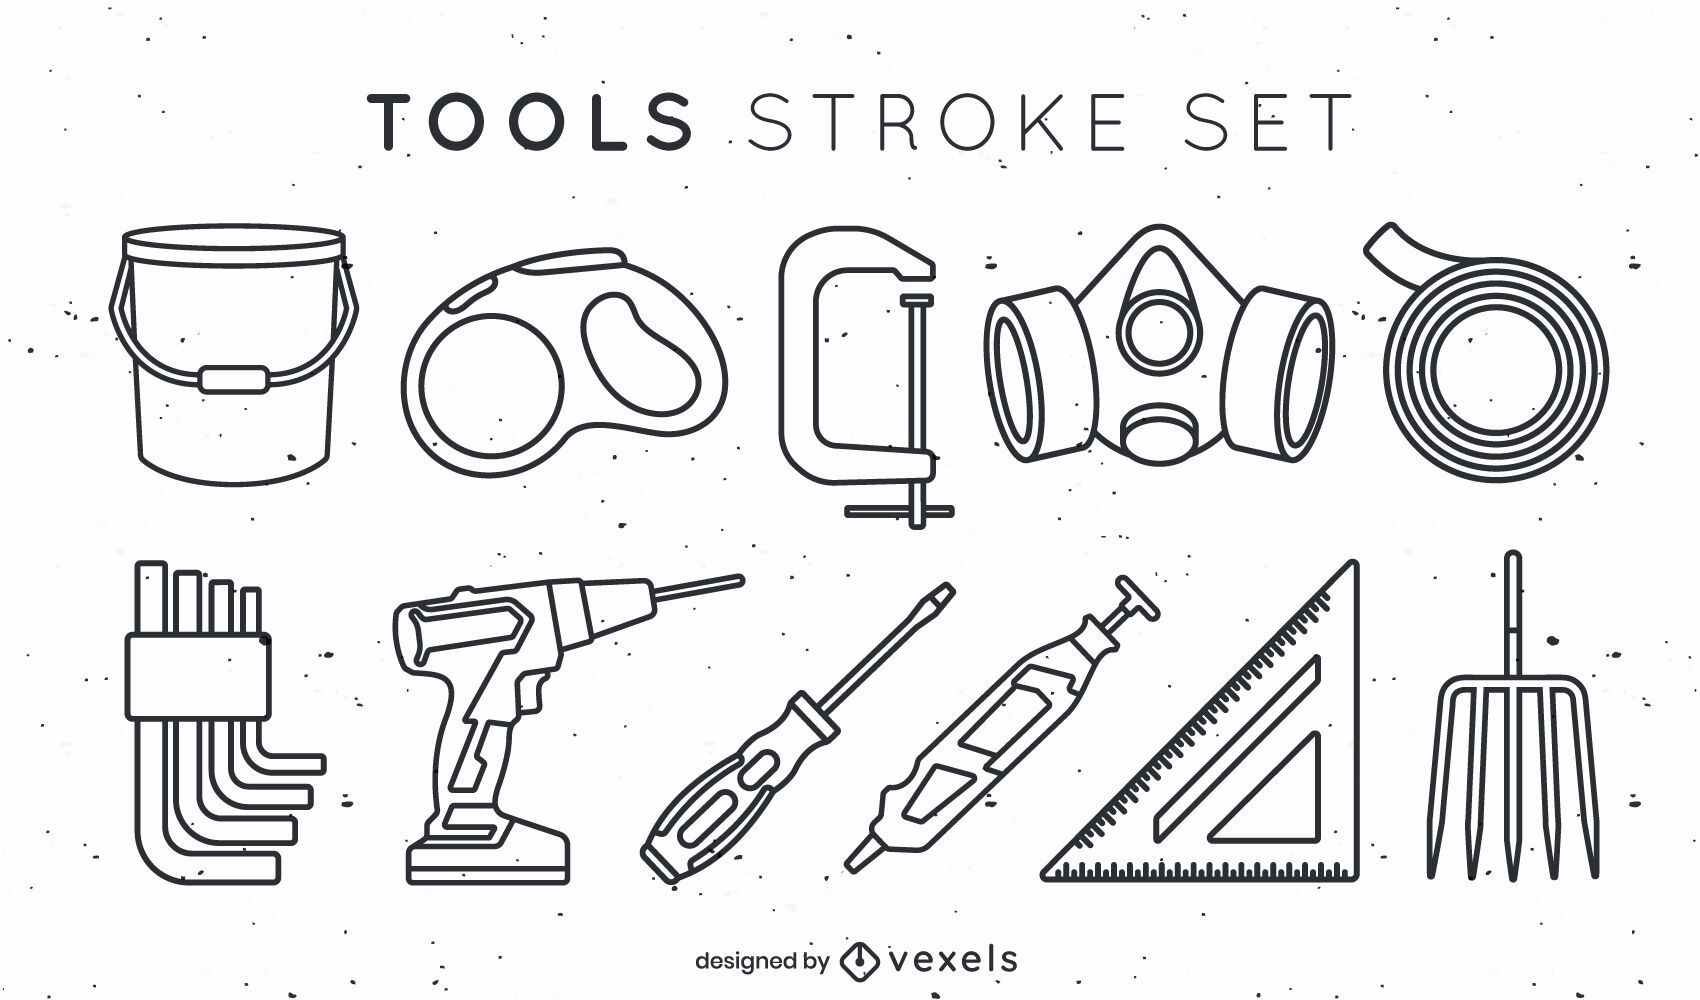 Set of tool elements in stroke style